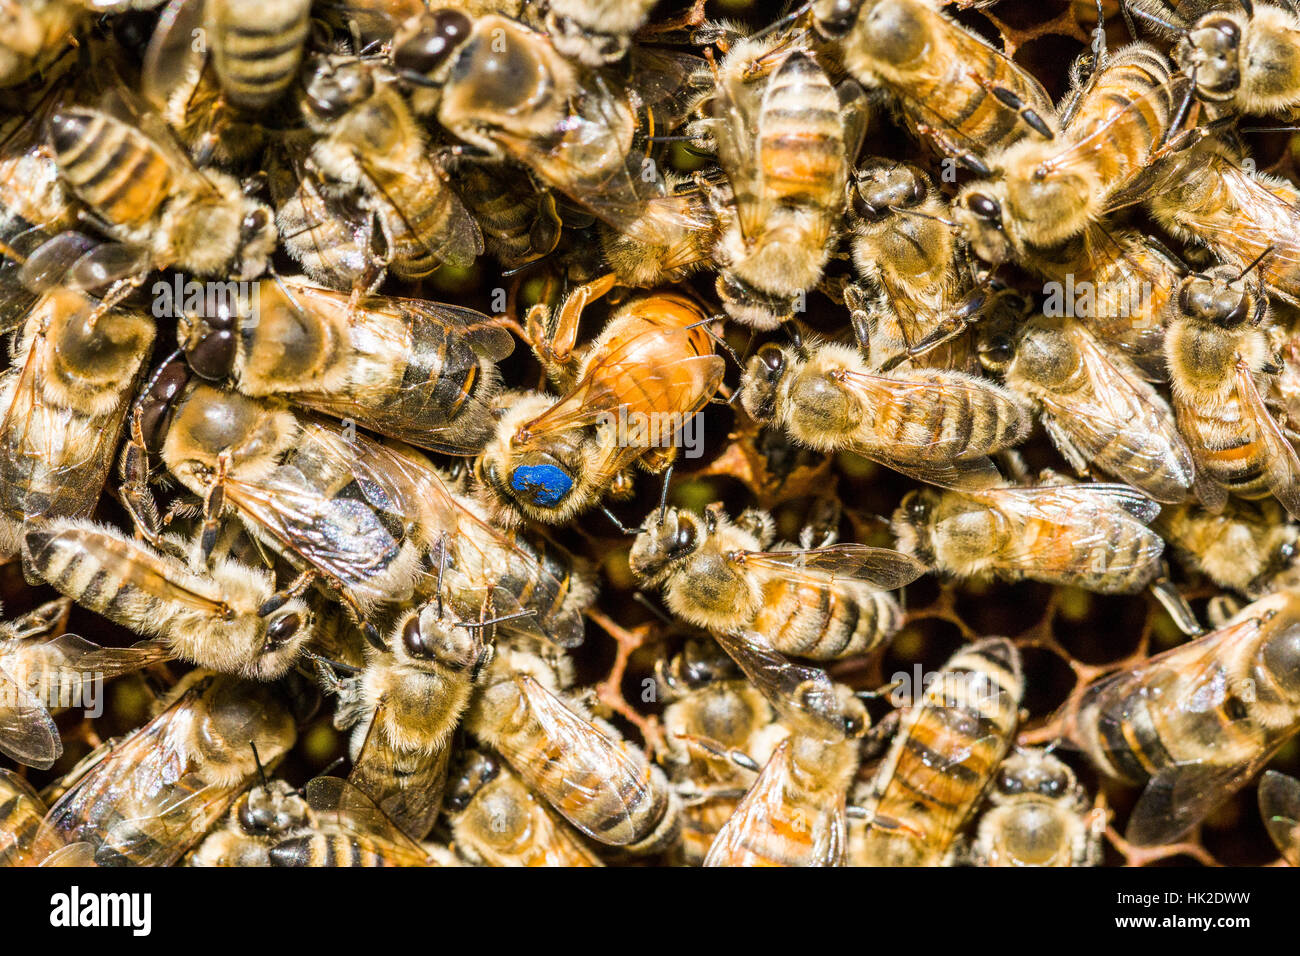 The blue marked Queen of a Carniolan honey bee (Apis mellifera carnica) colony is inserting an egg - Stock Image